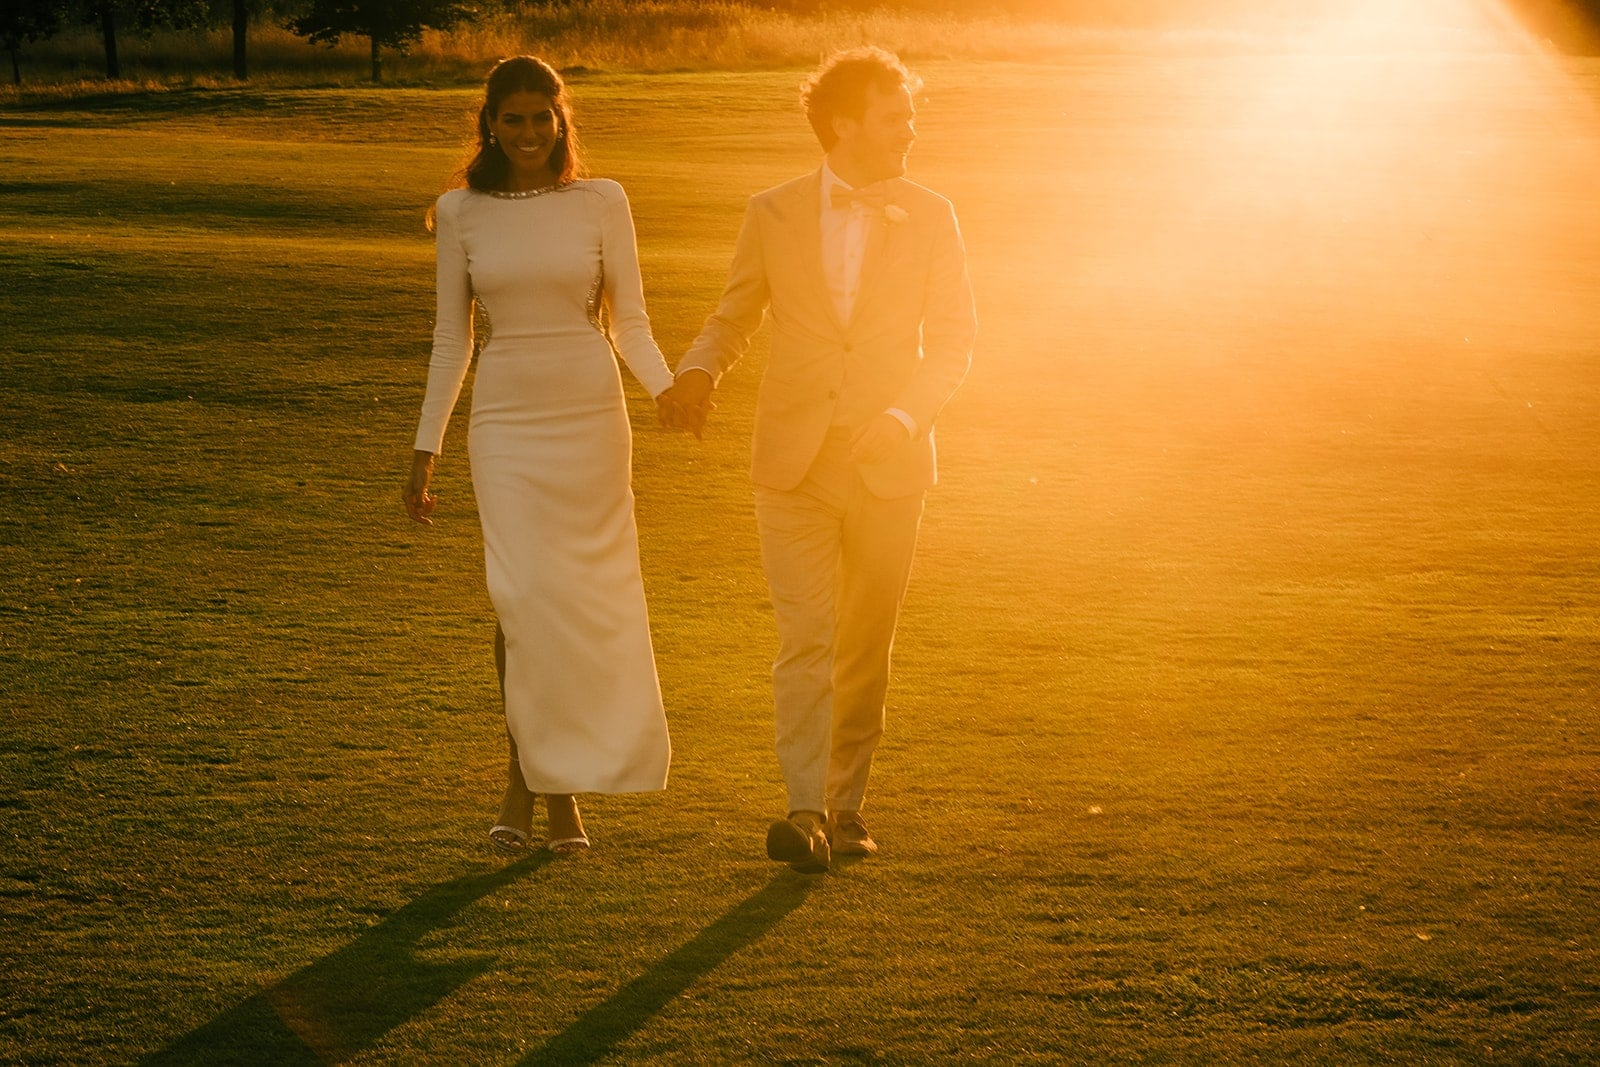 Natali & Alex walking in some beautiful light